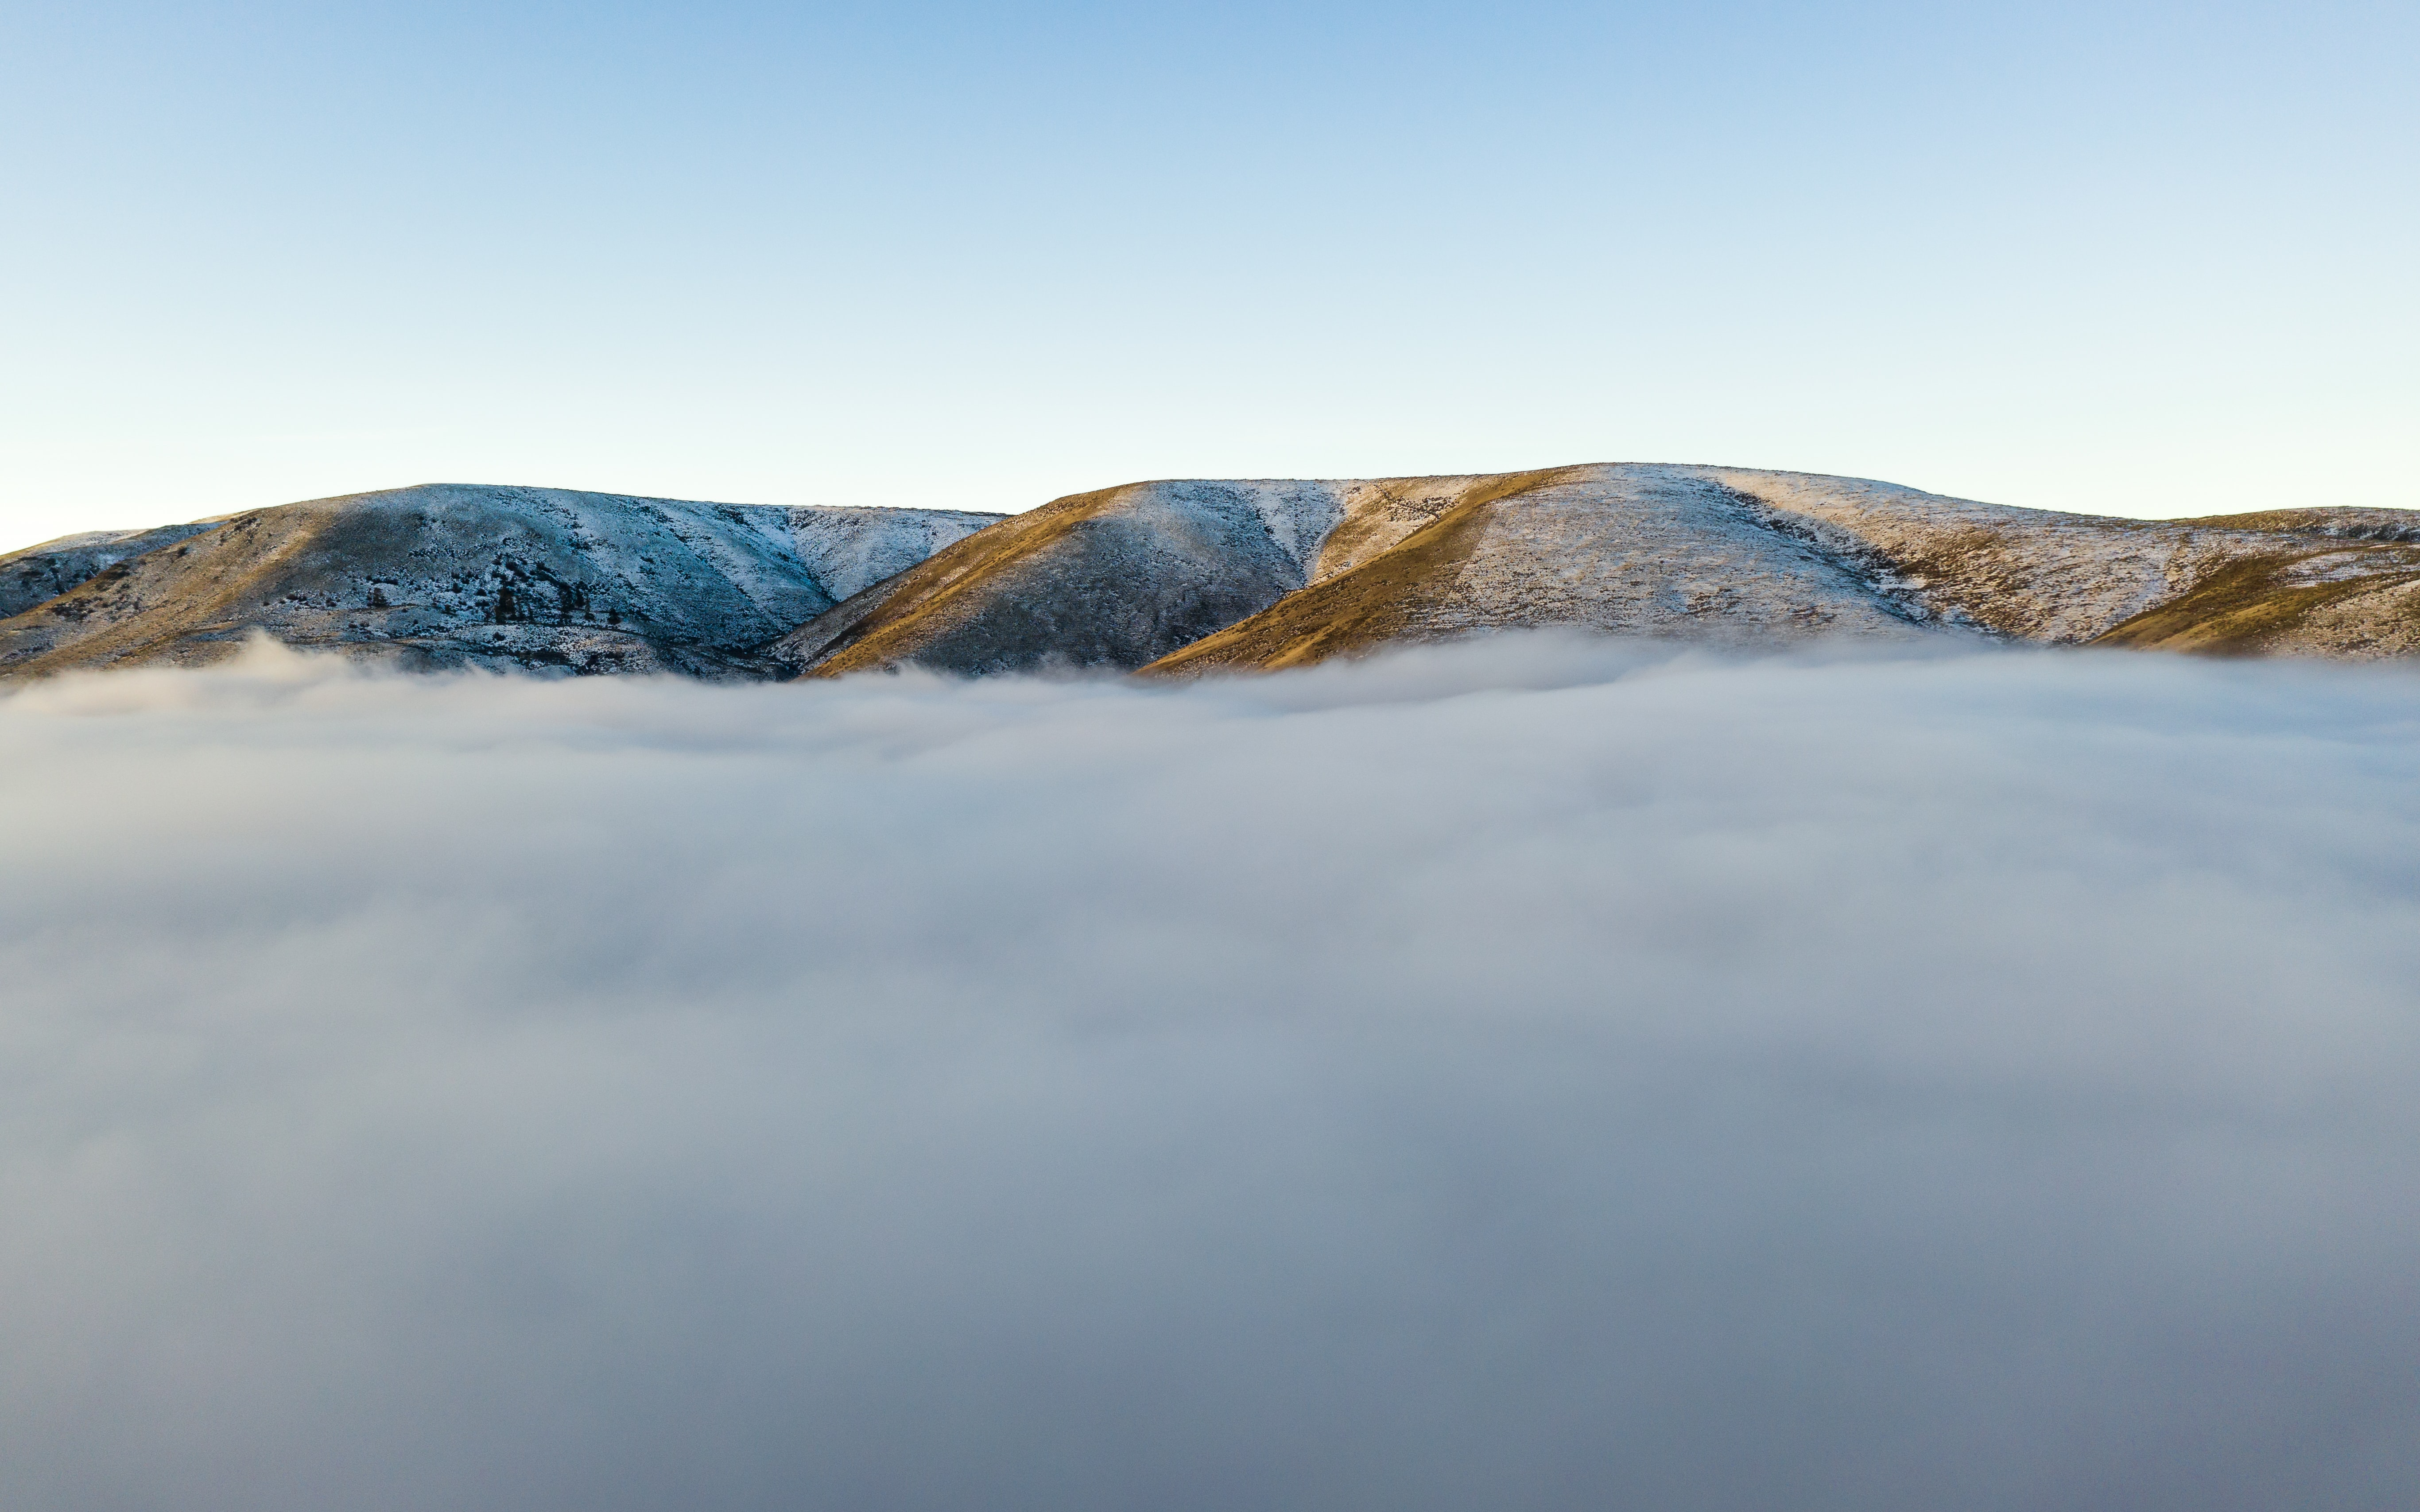 mountain over the clouds